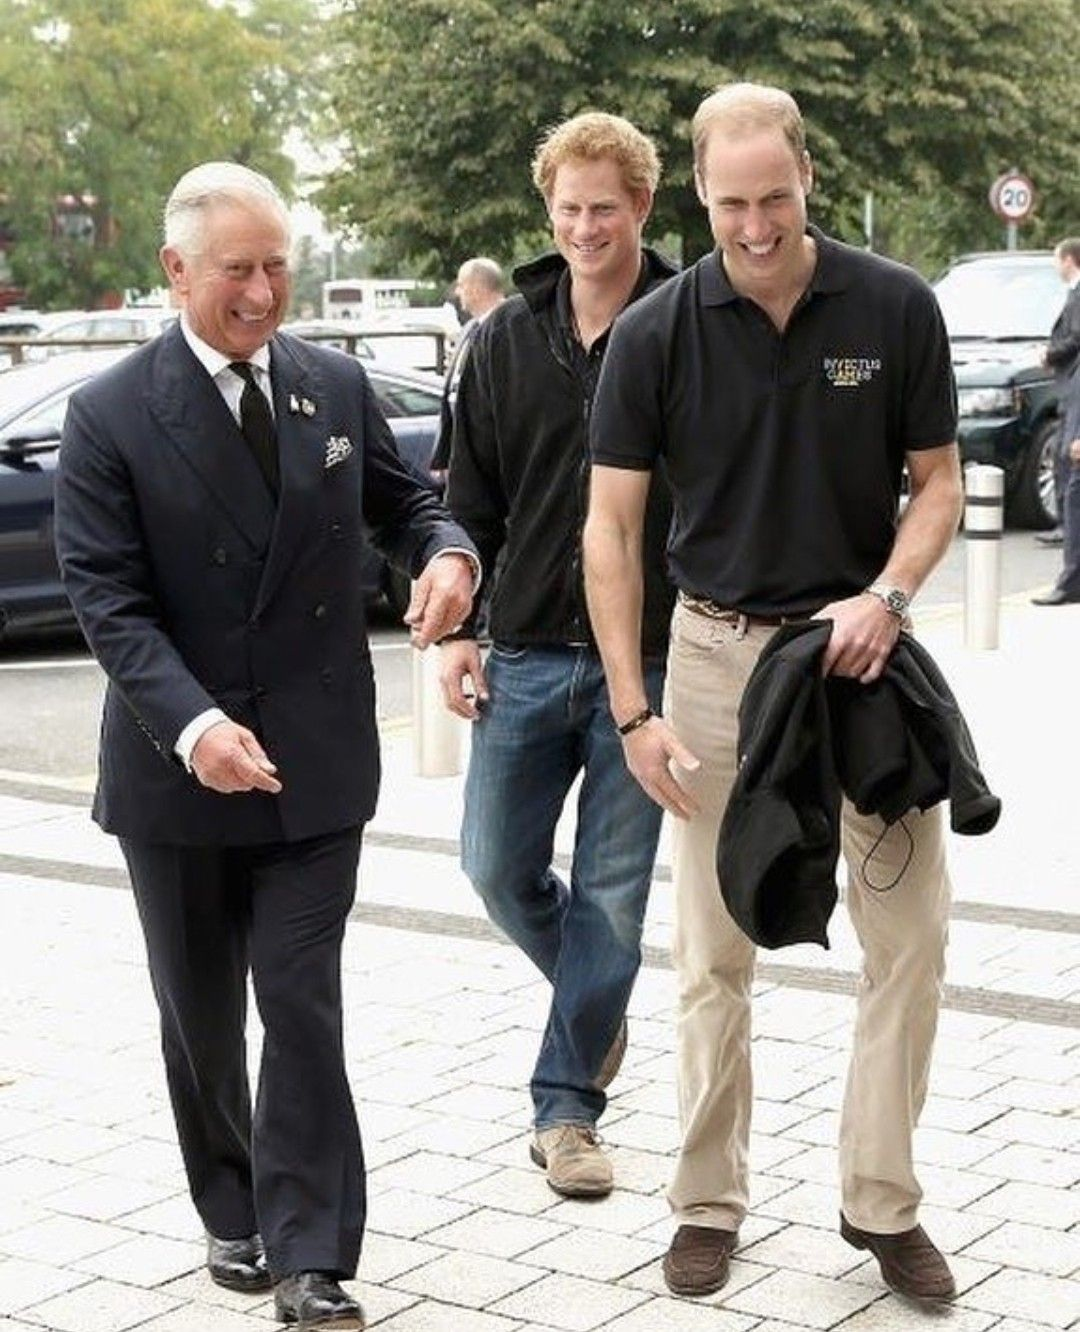 Prince Charles With His Sons Princes William & Harry